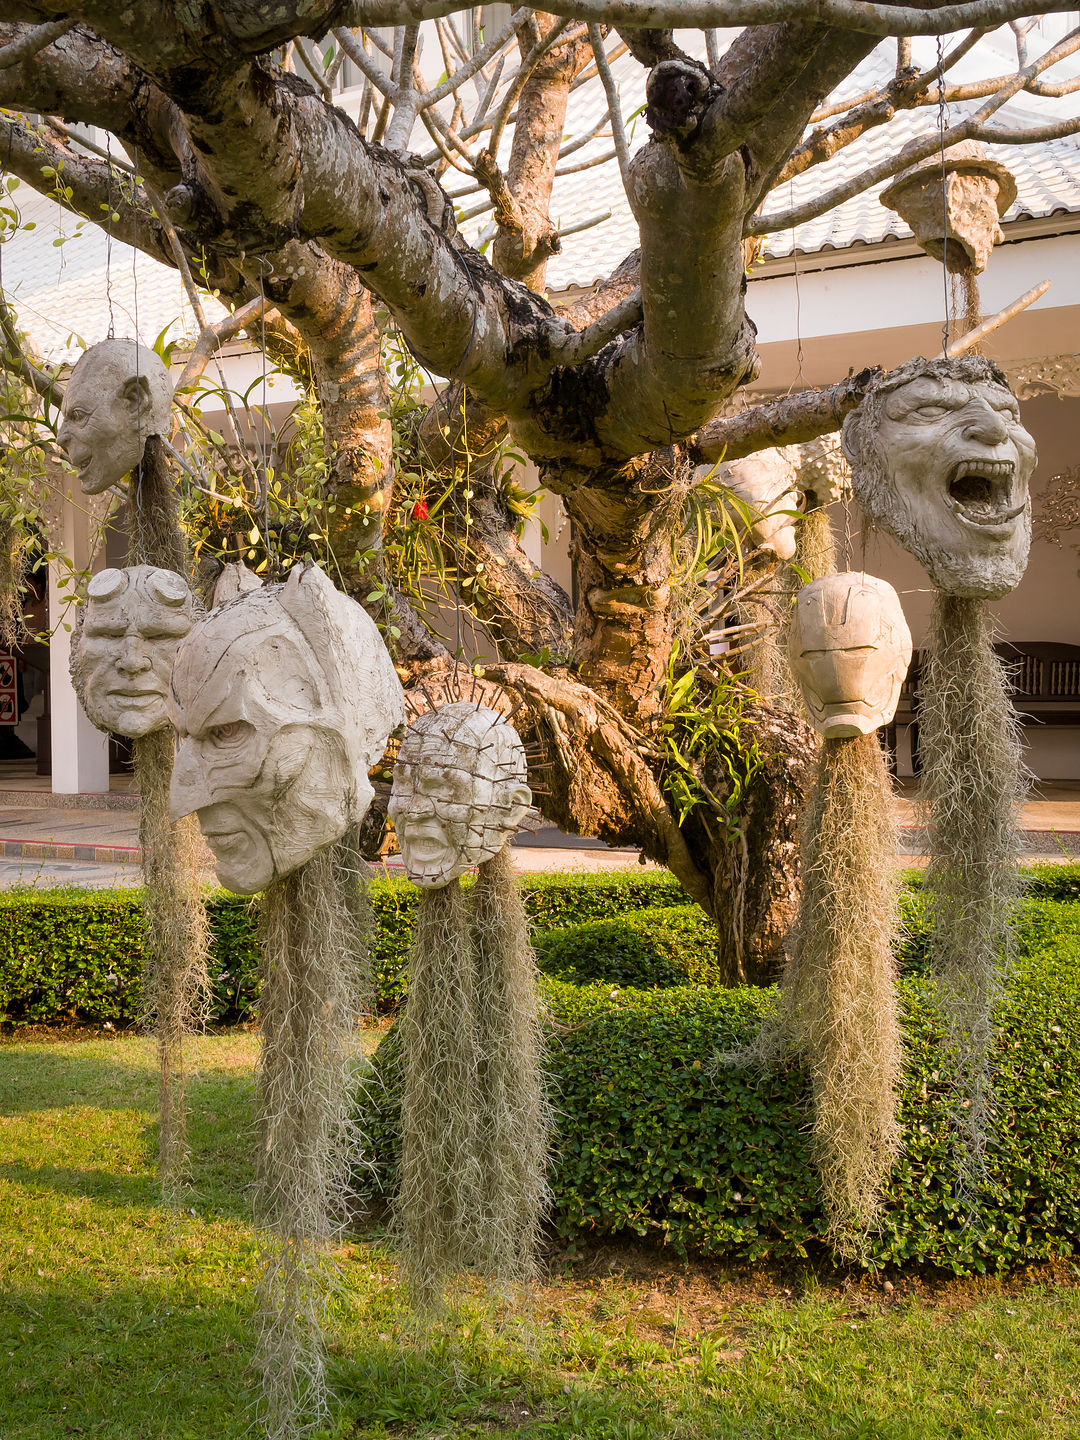 More severed heads at the White Temple